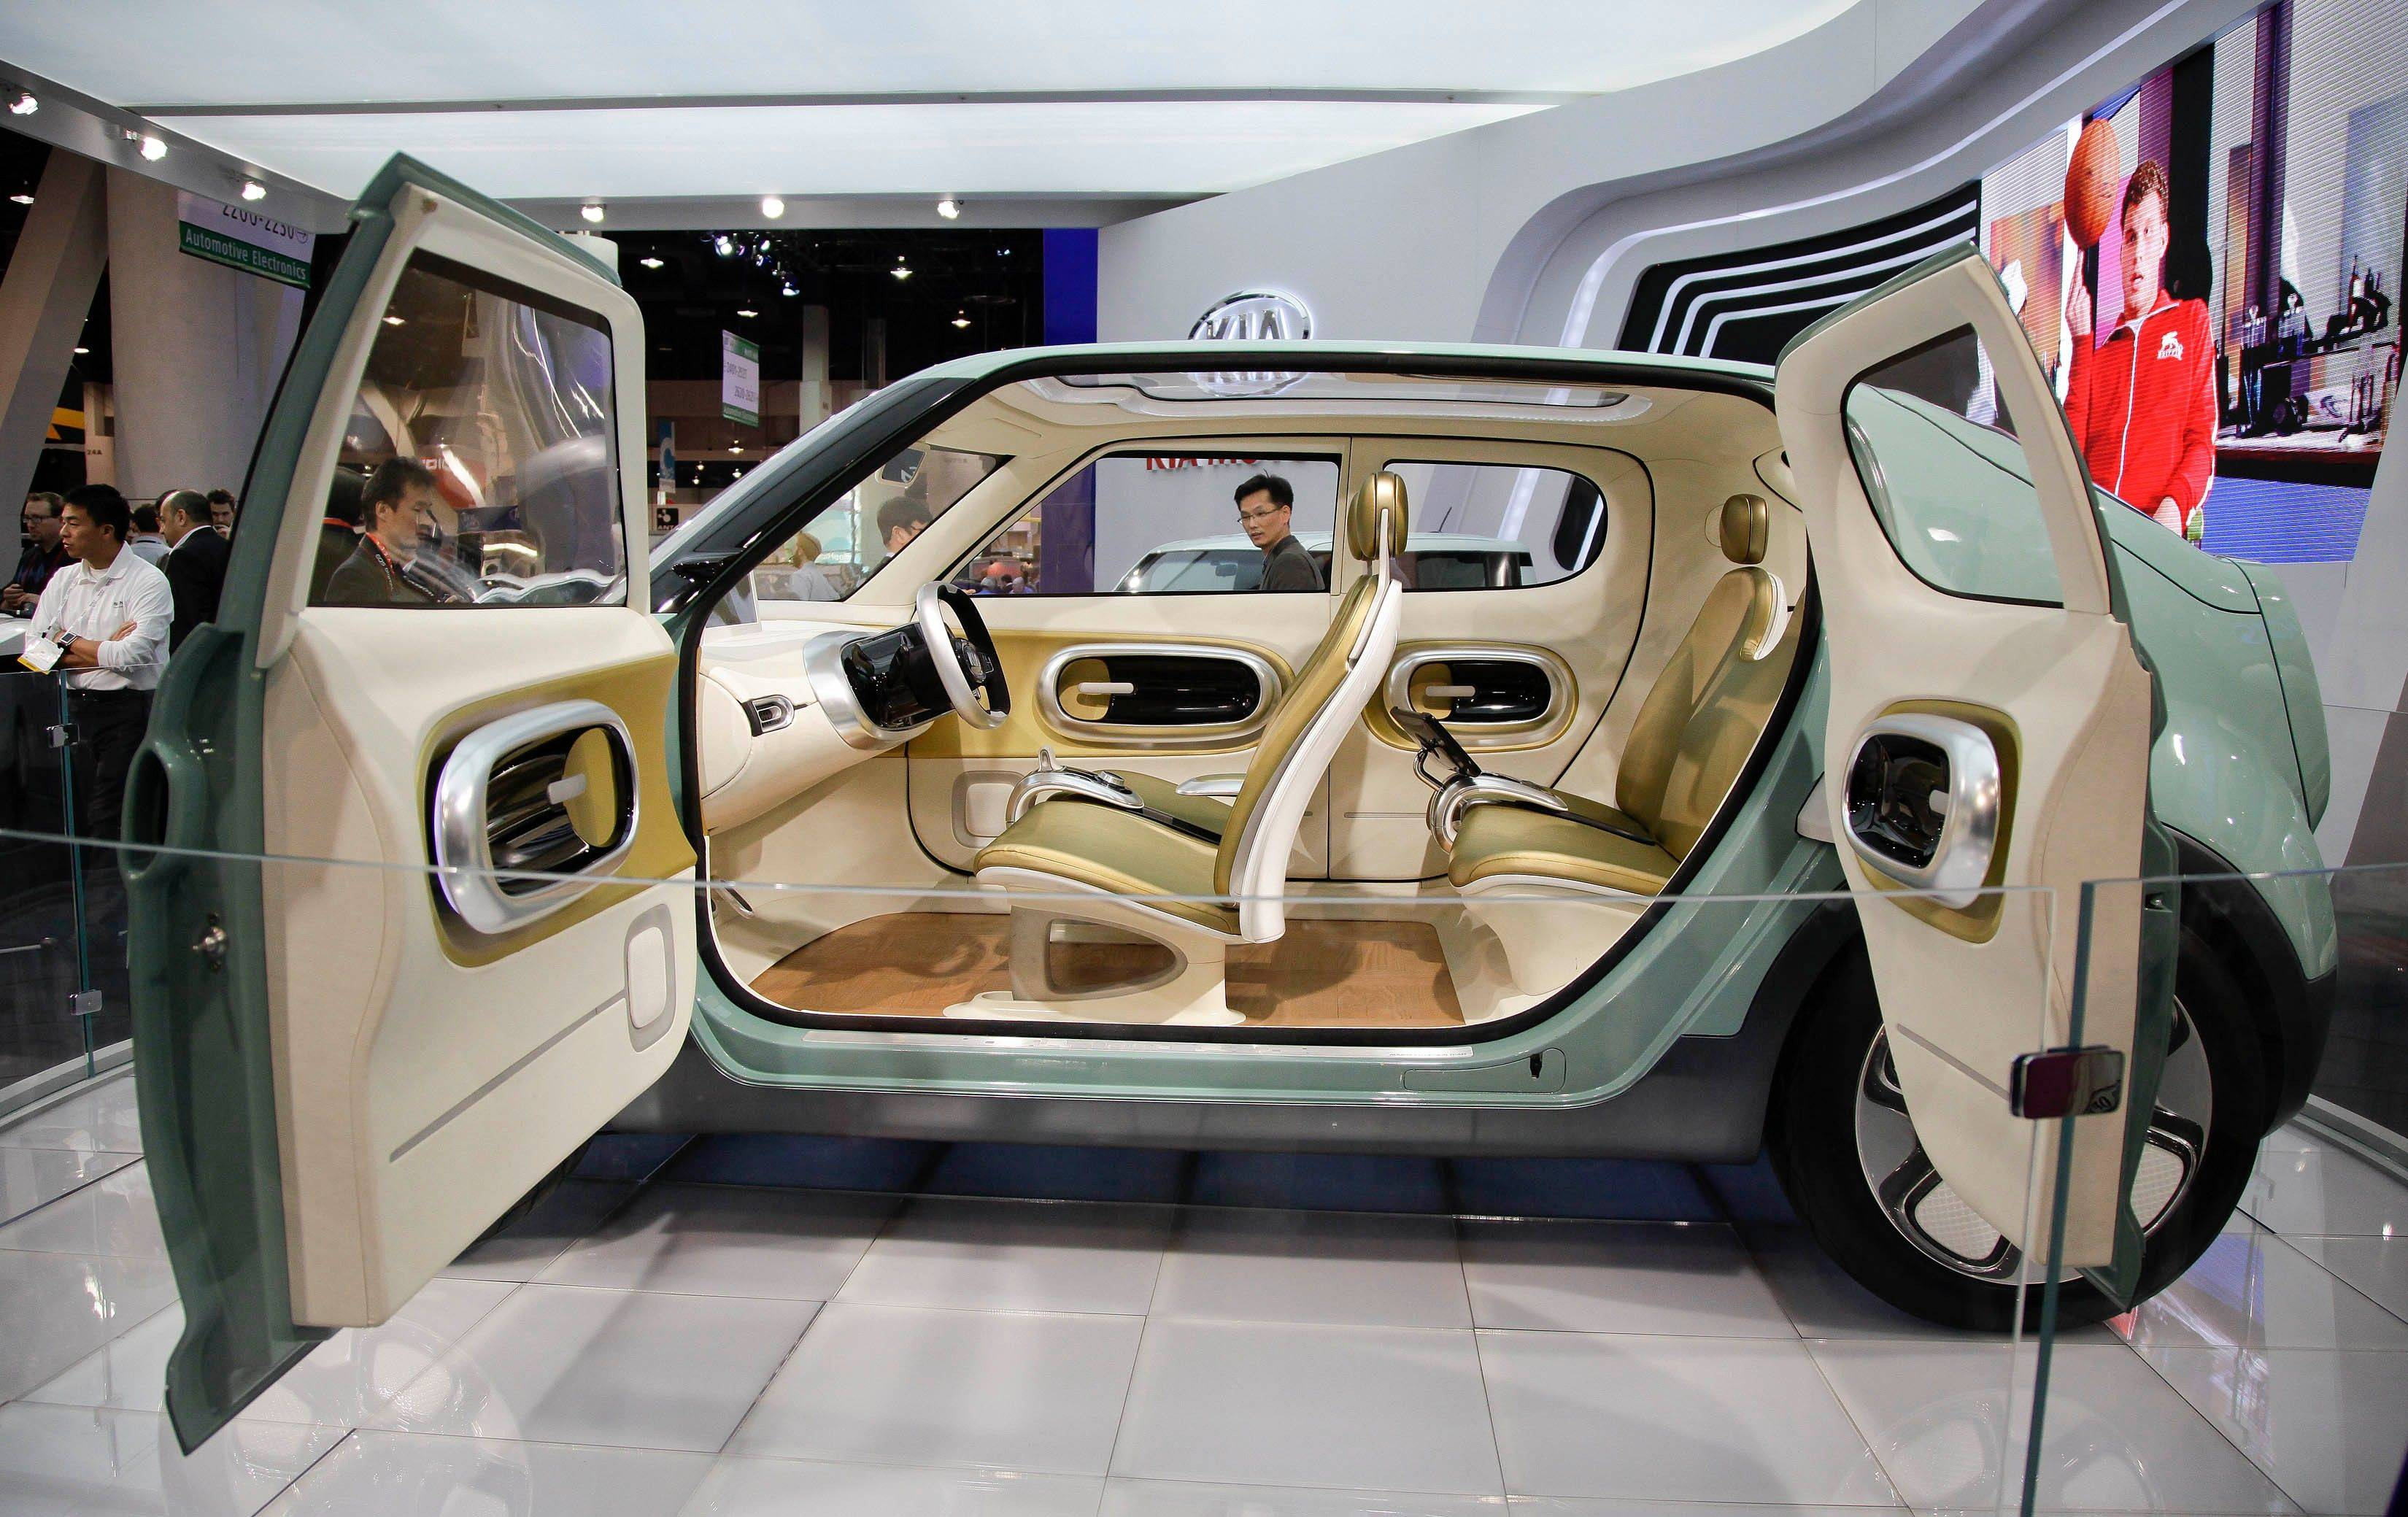 The Kia Naimo concept car is displayed at the 2012 International Consumer Electronics show.